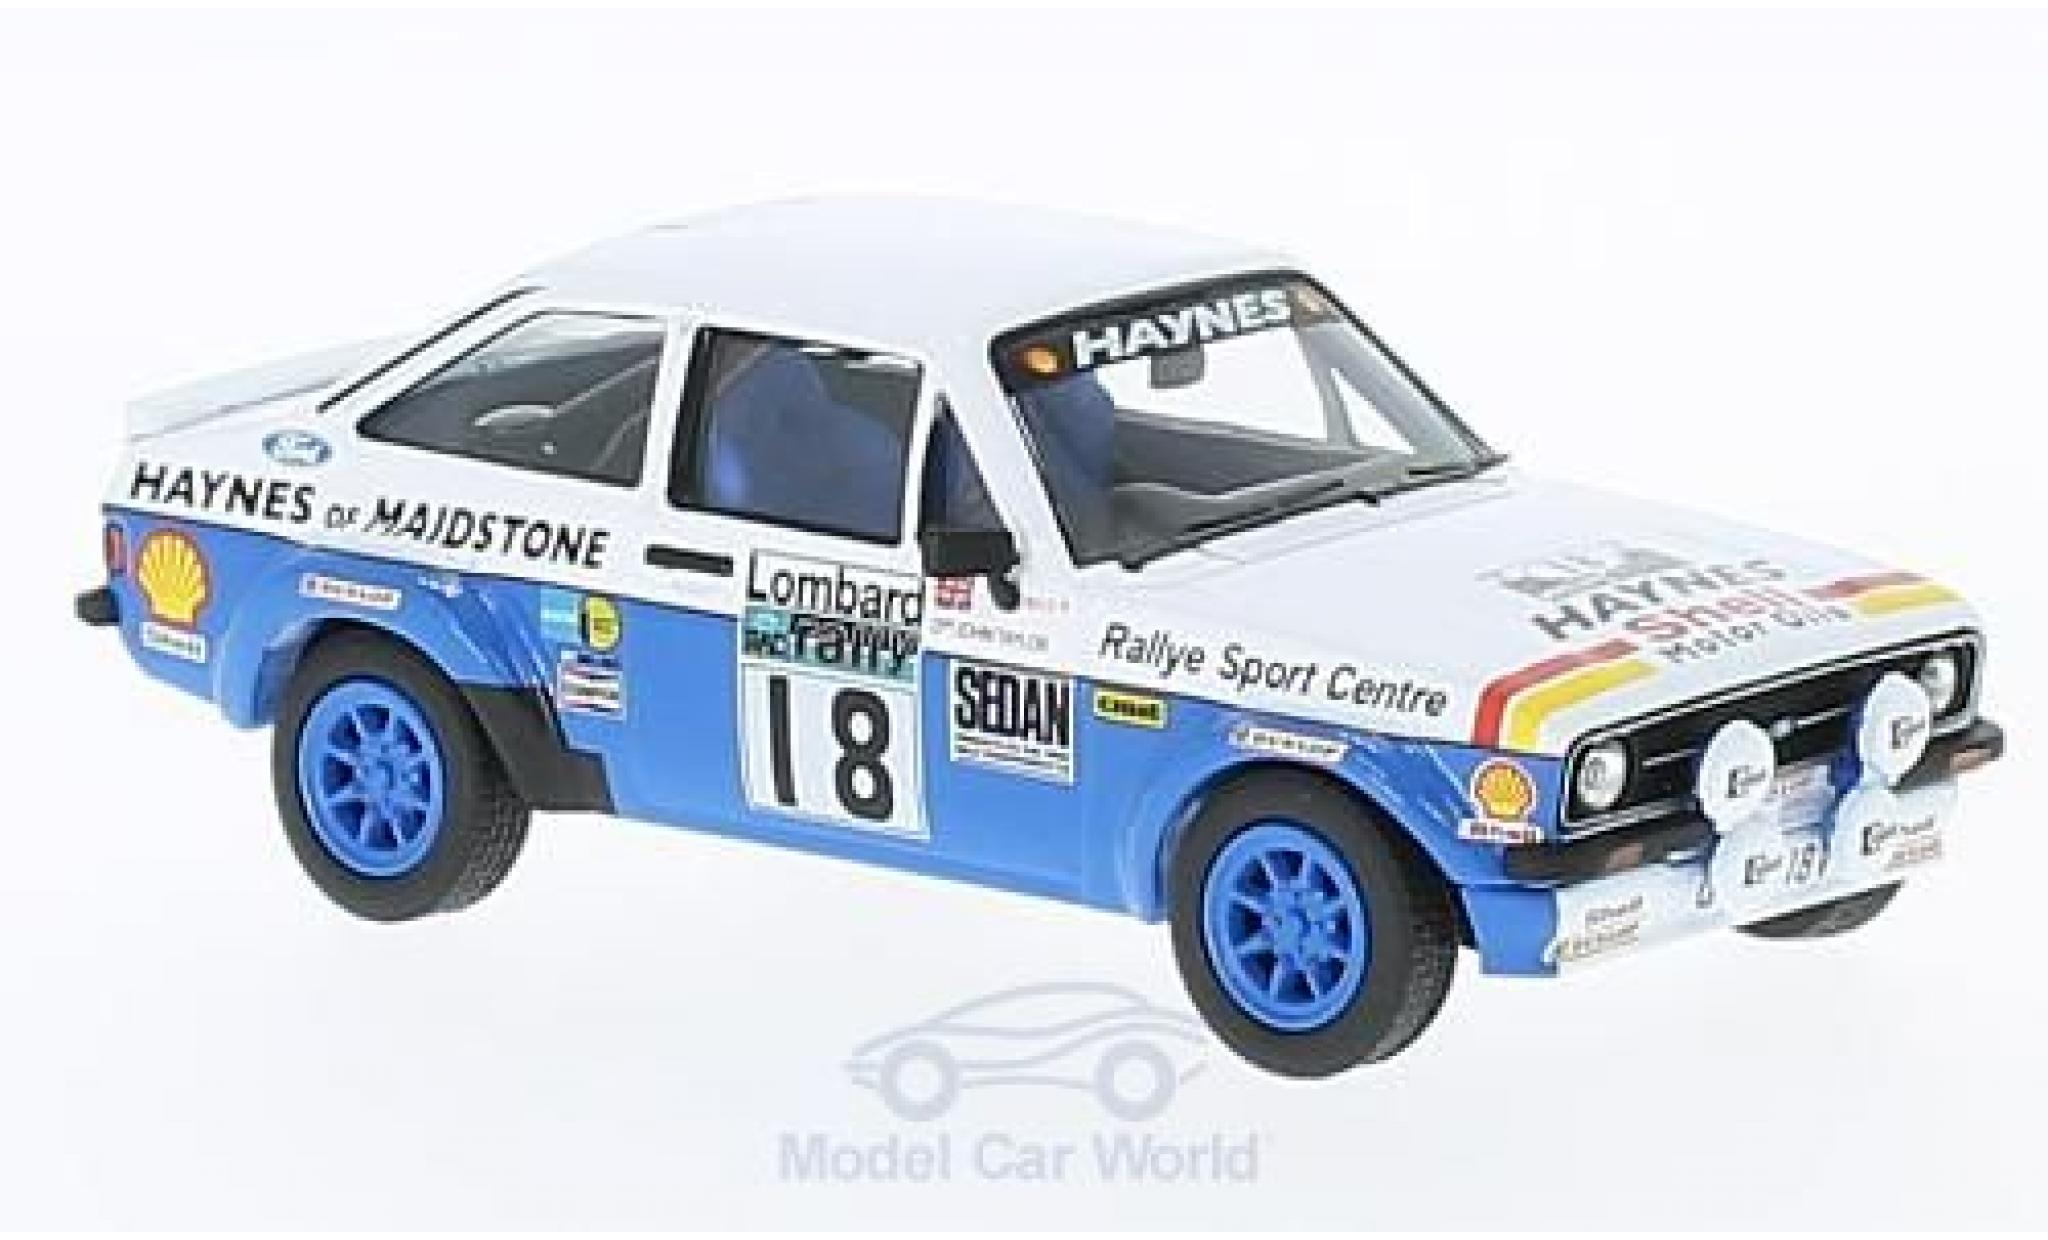 Ford Escort 1/43 Vanguards MK2 RS 1800 RHD No.18 Rallye WM RAC Rallye J.Taylor/P.Short